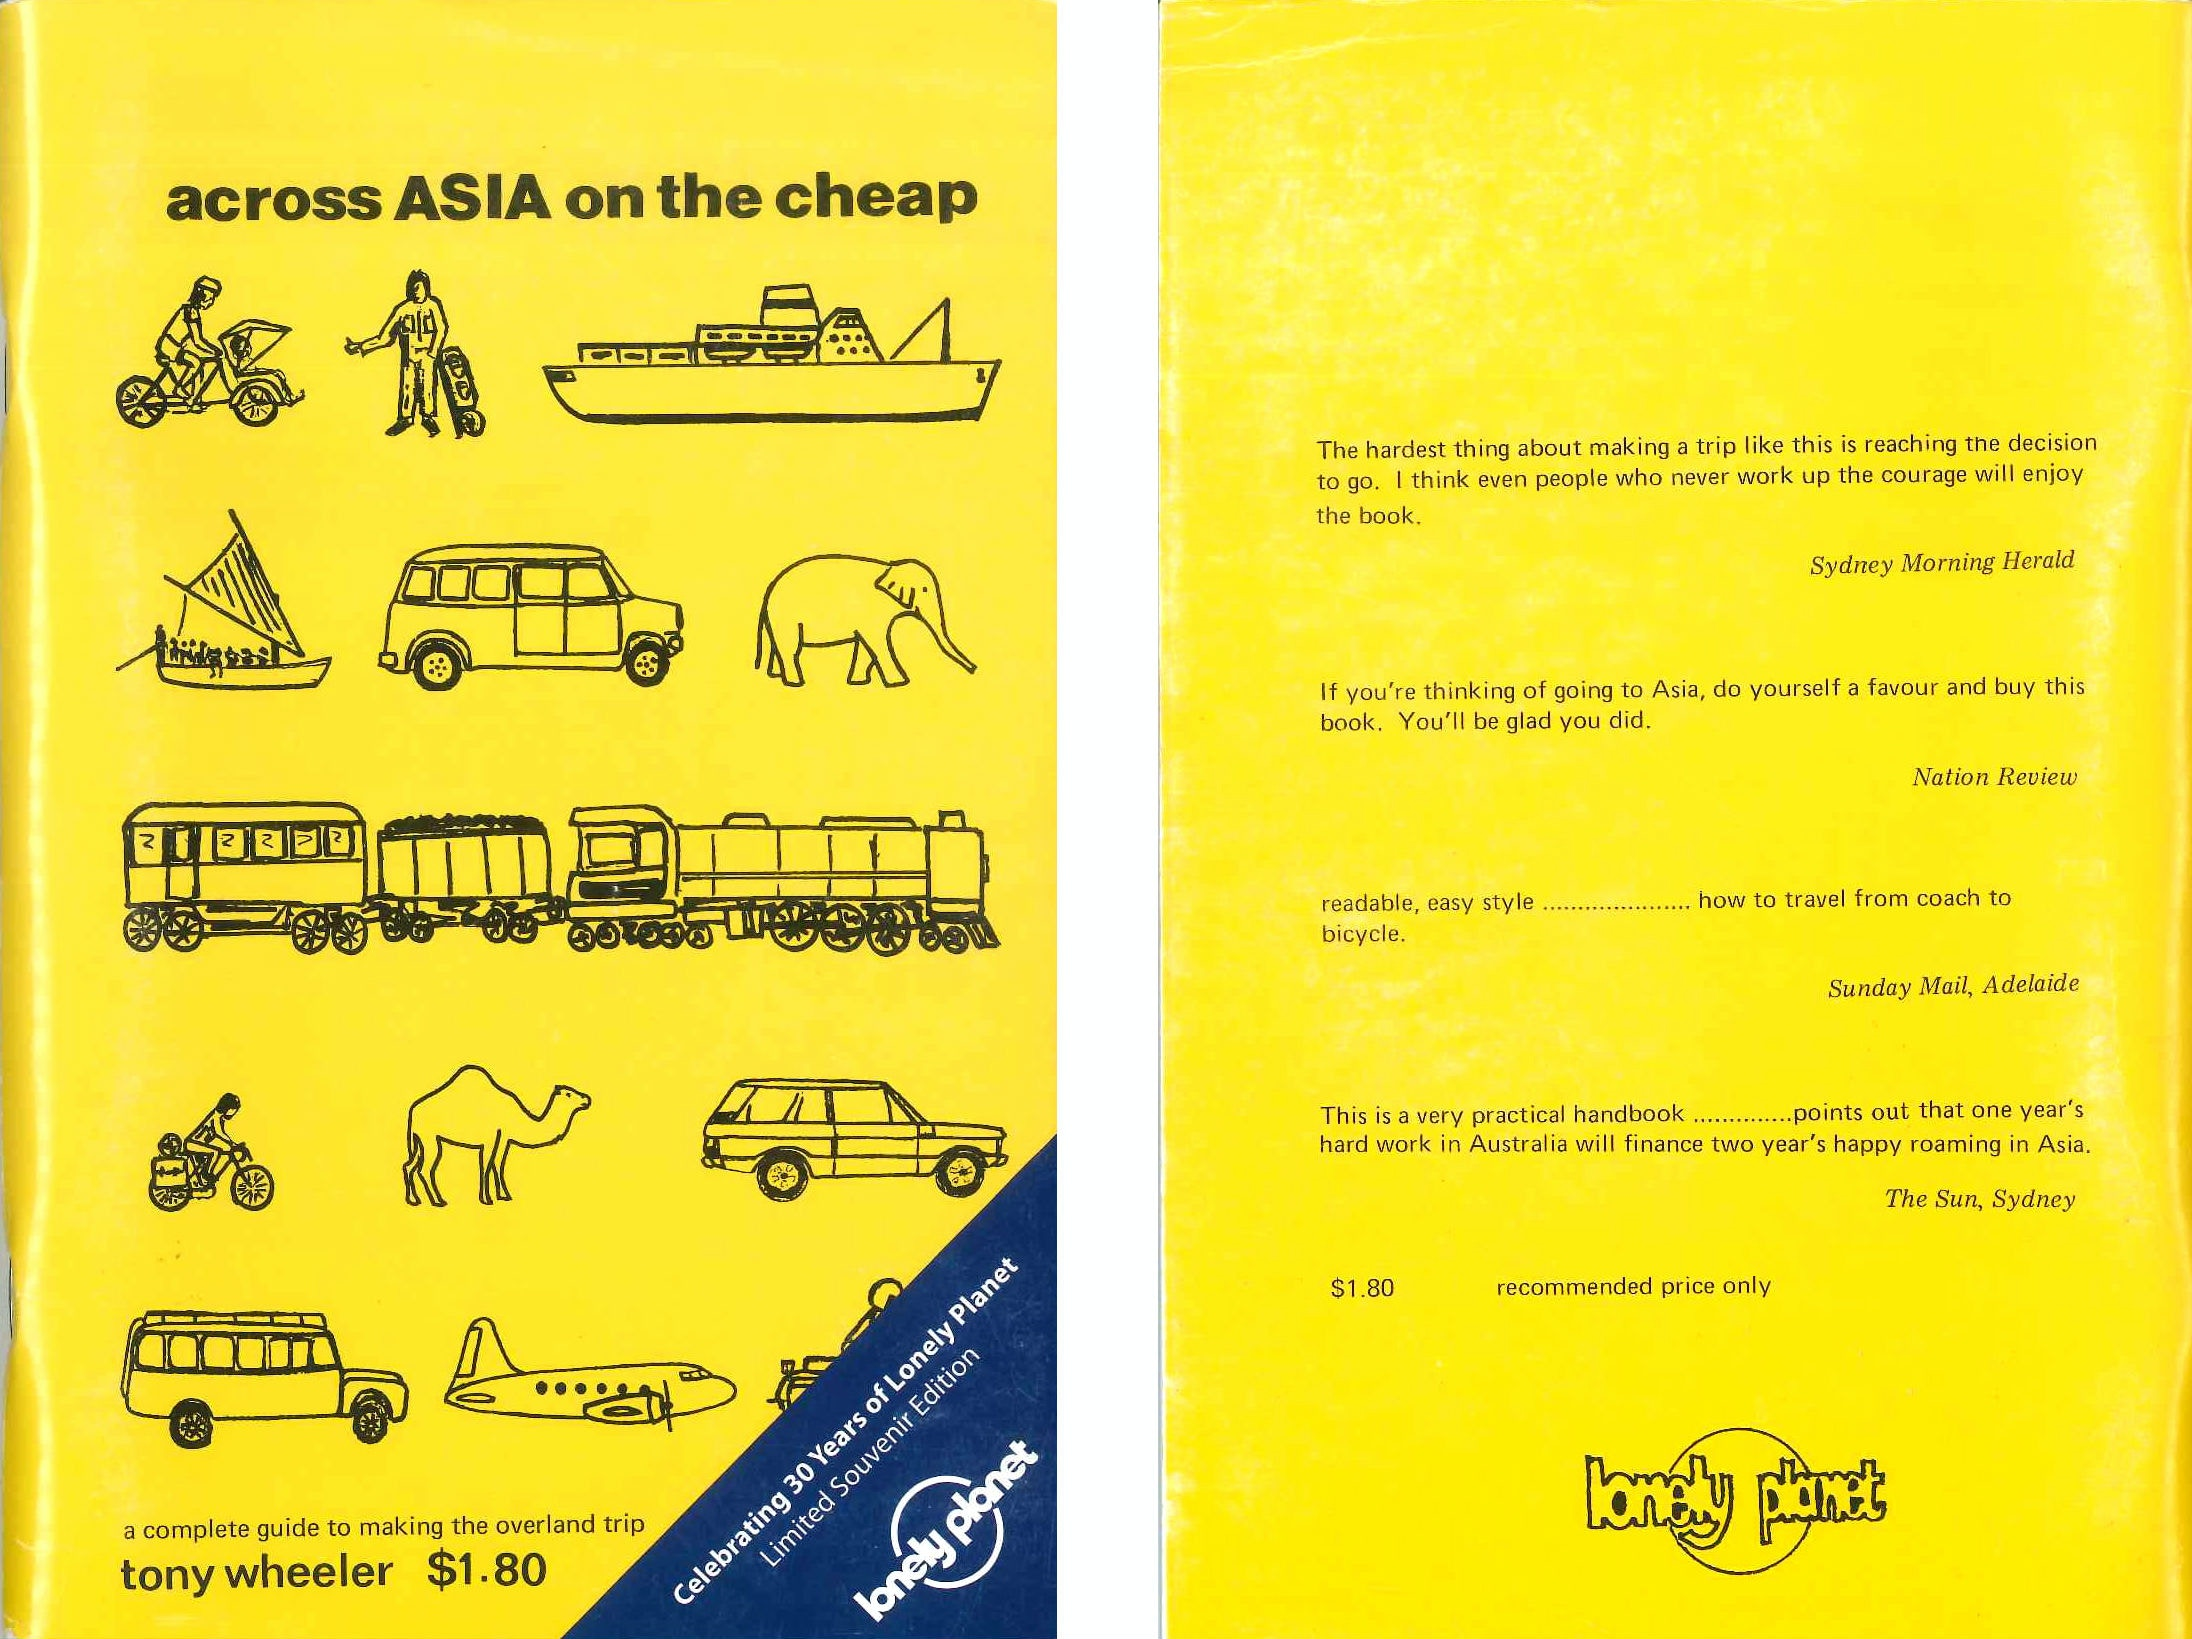 The first ever iteration of the Lonely Planet logo on the cover of 'across ASIA on the cheap' © Lonely Planet